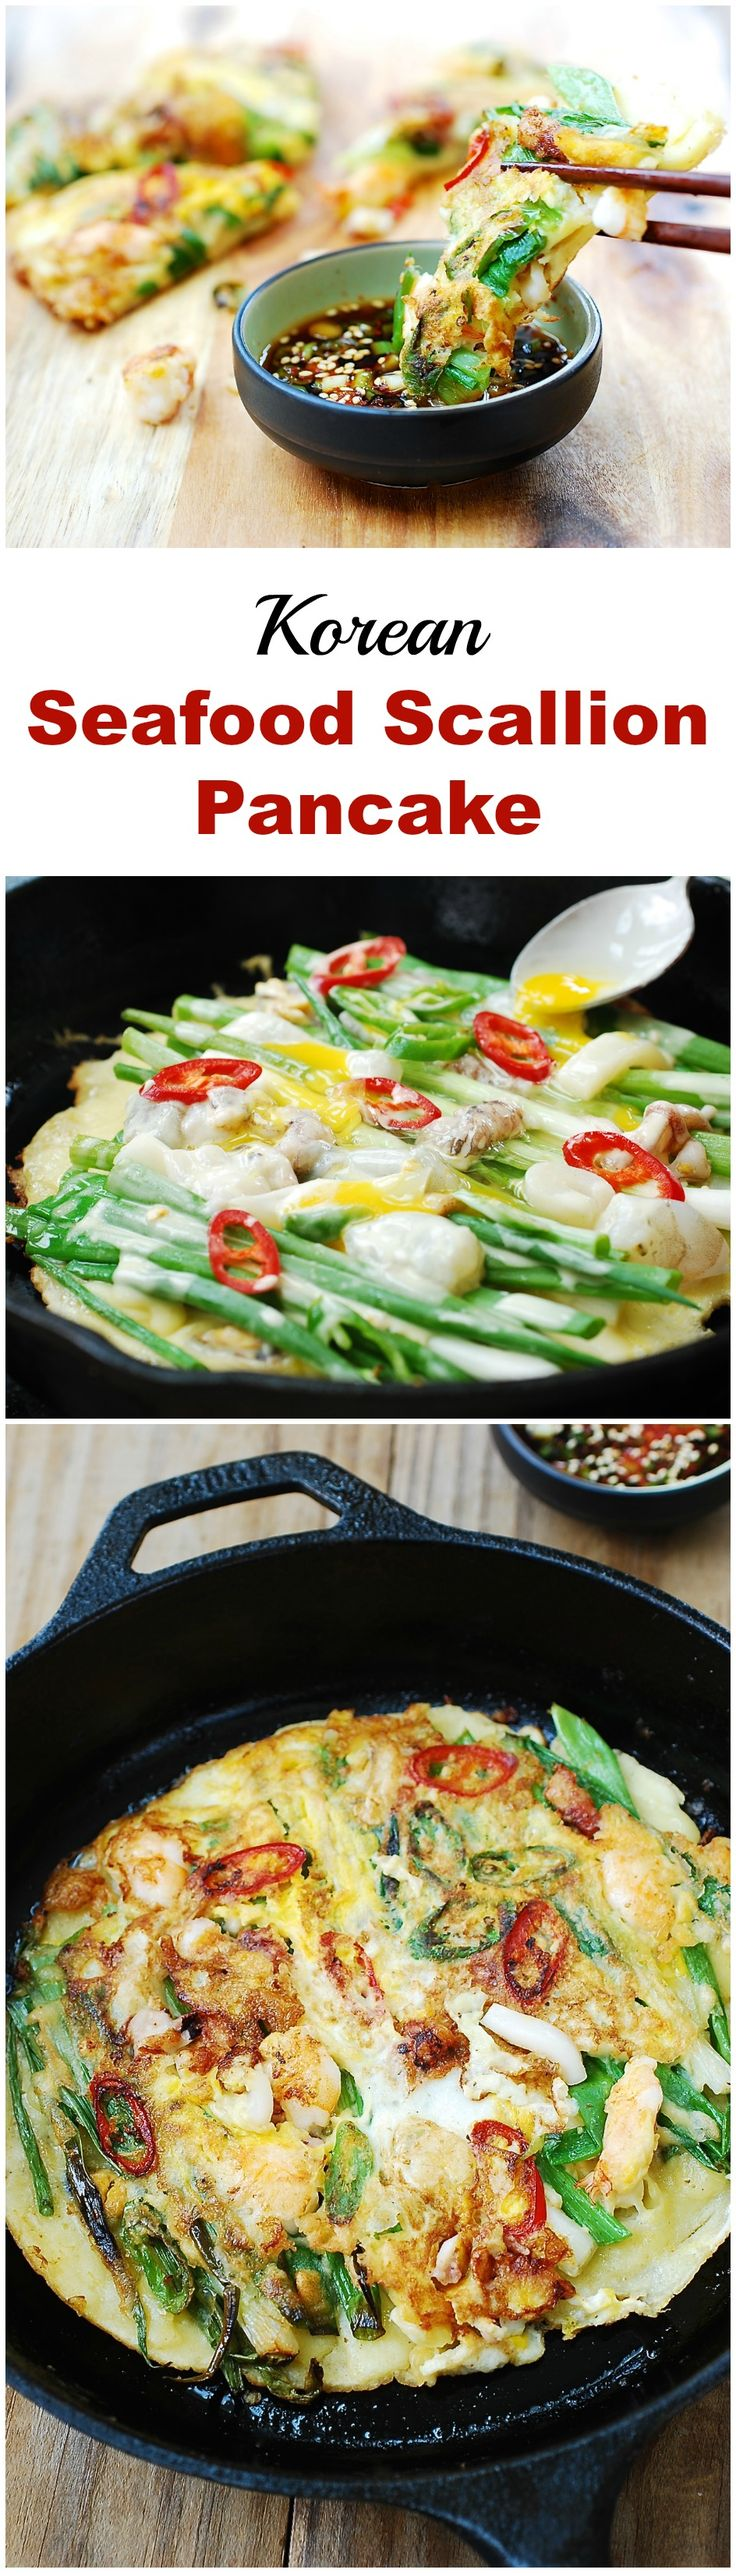 Everything you need to know about how to make crispy, delicious Korean Seafood Scallion pancake (haemul pajeon)!